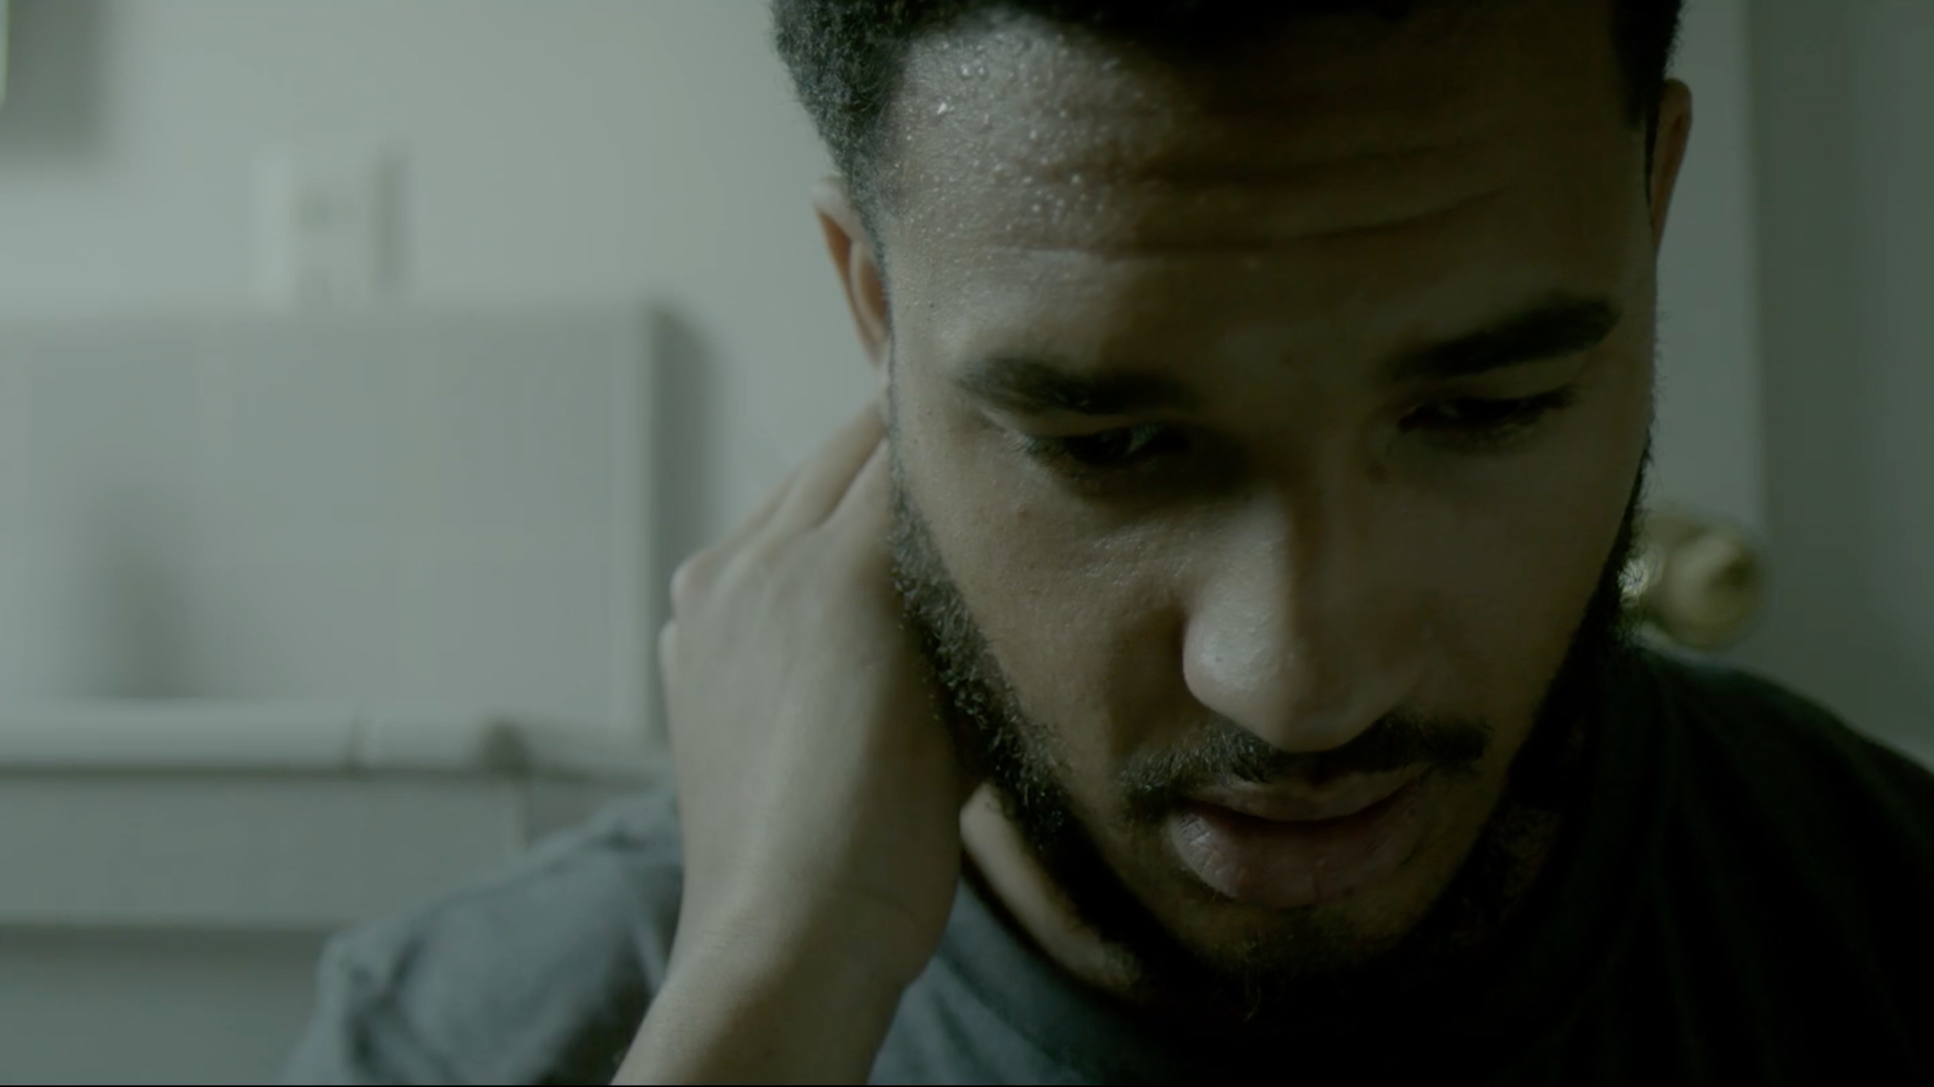 A New Sci-Fi Short Film Explores The Scarier Side Of Mind-Reading